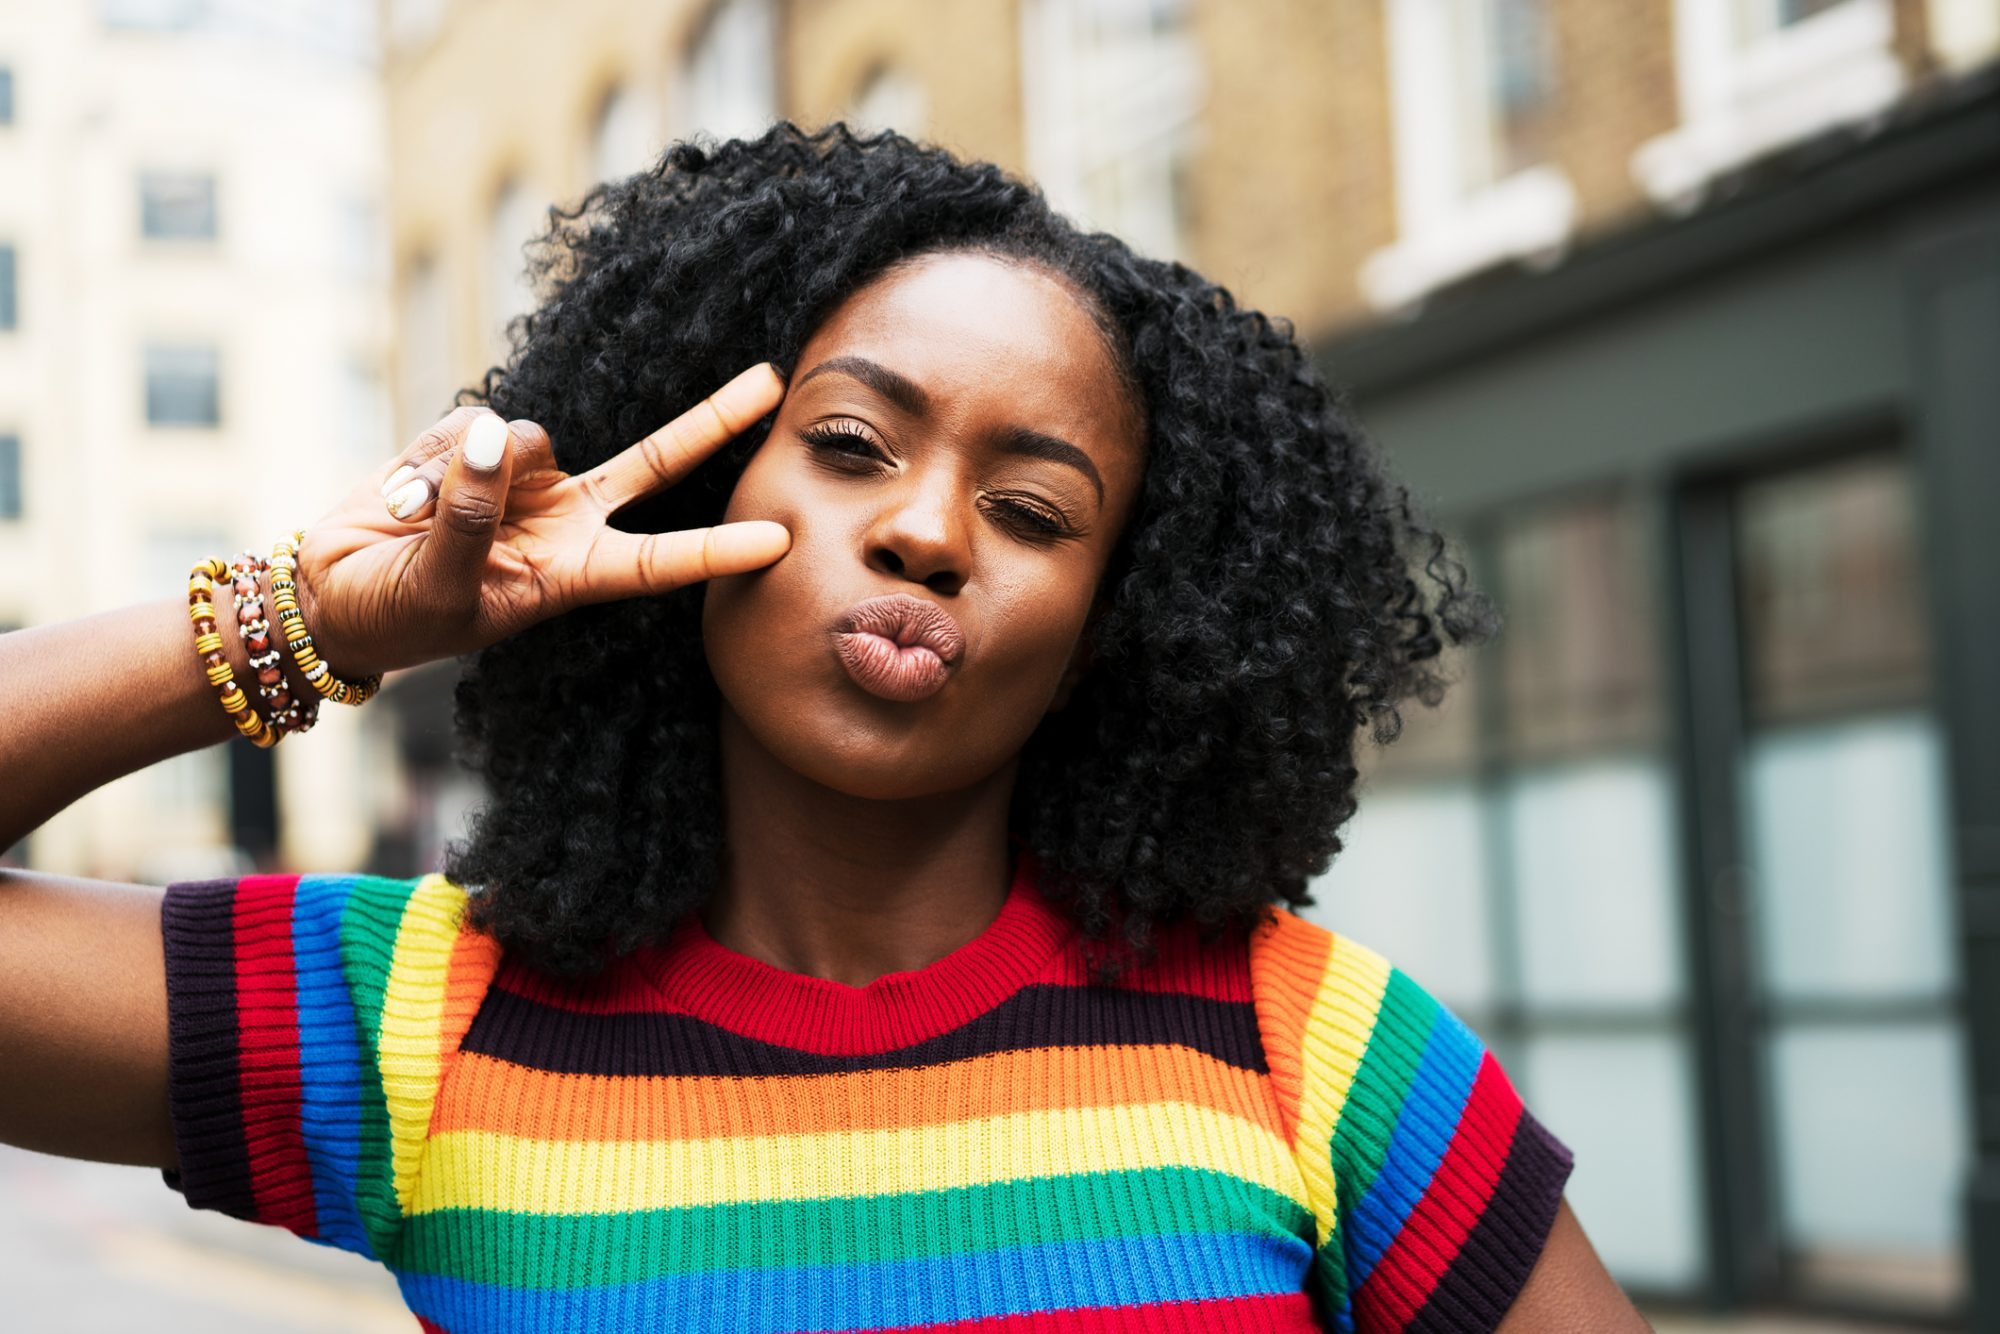 Woman making a kiss face and posing with a peace sign